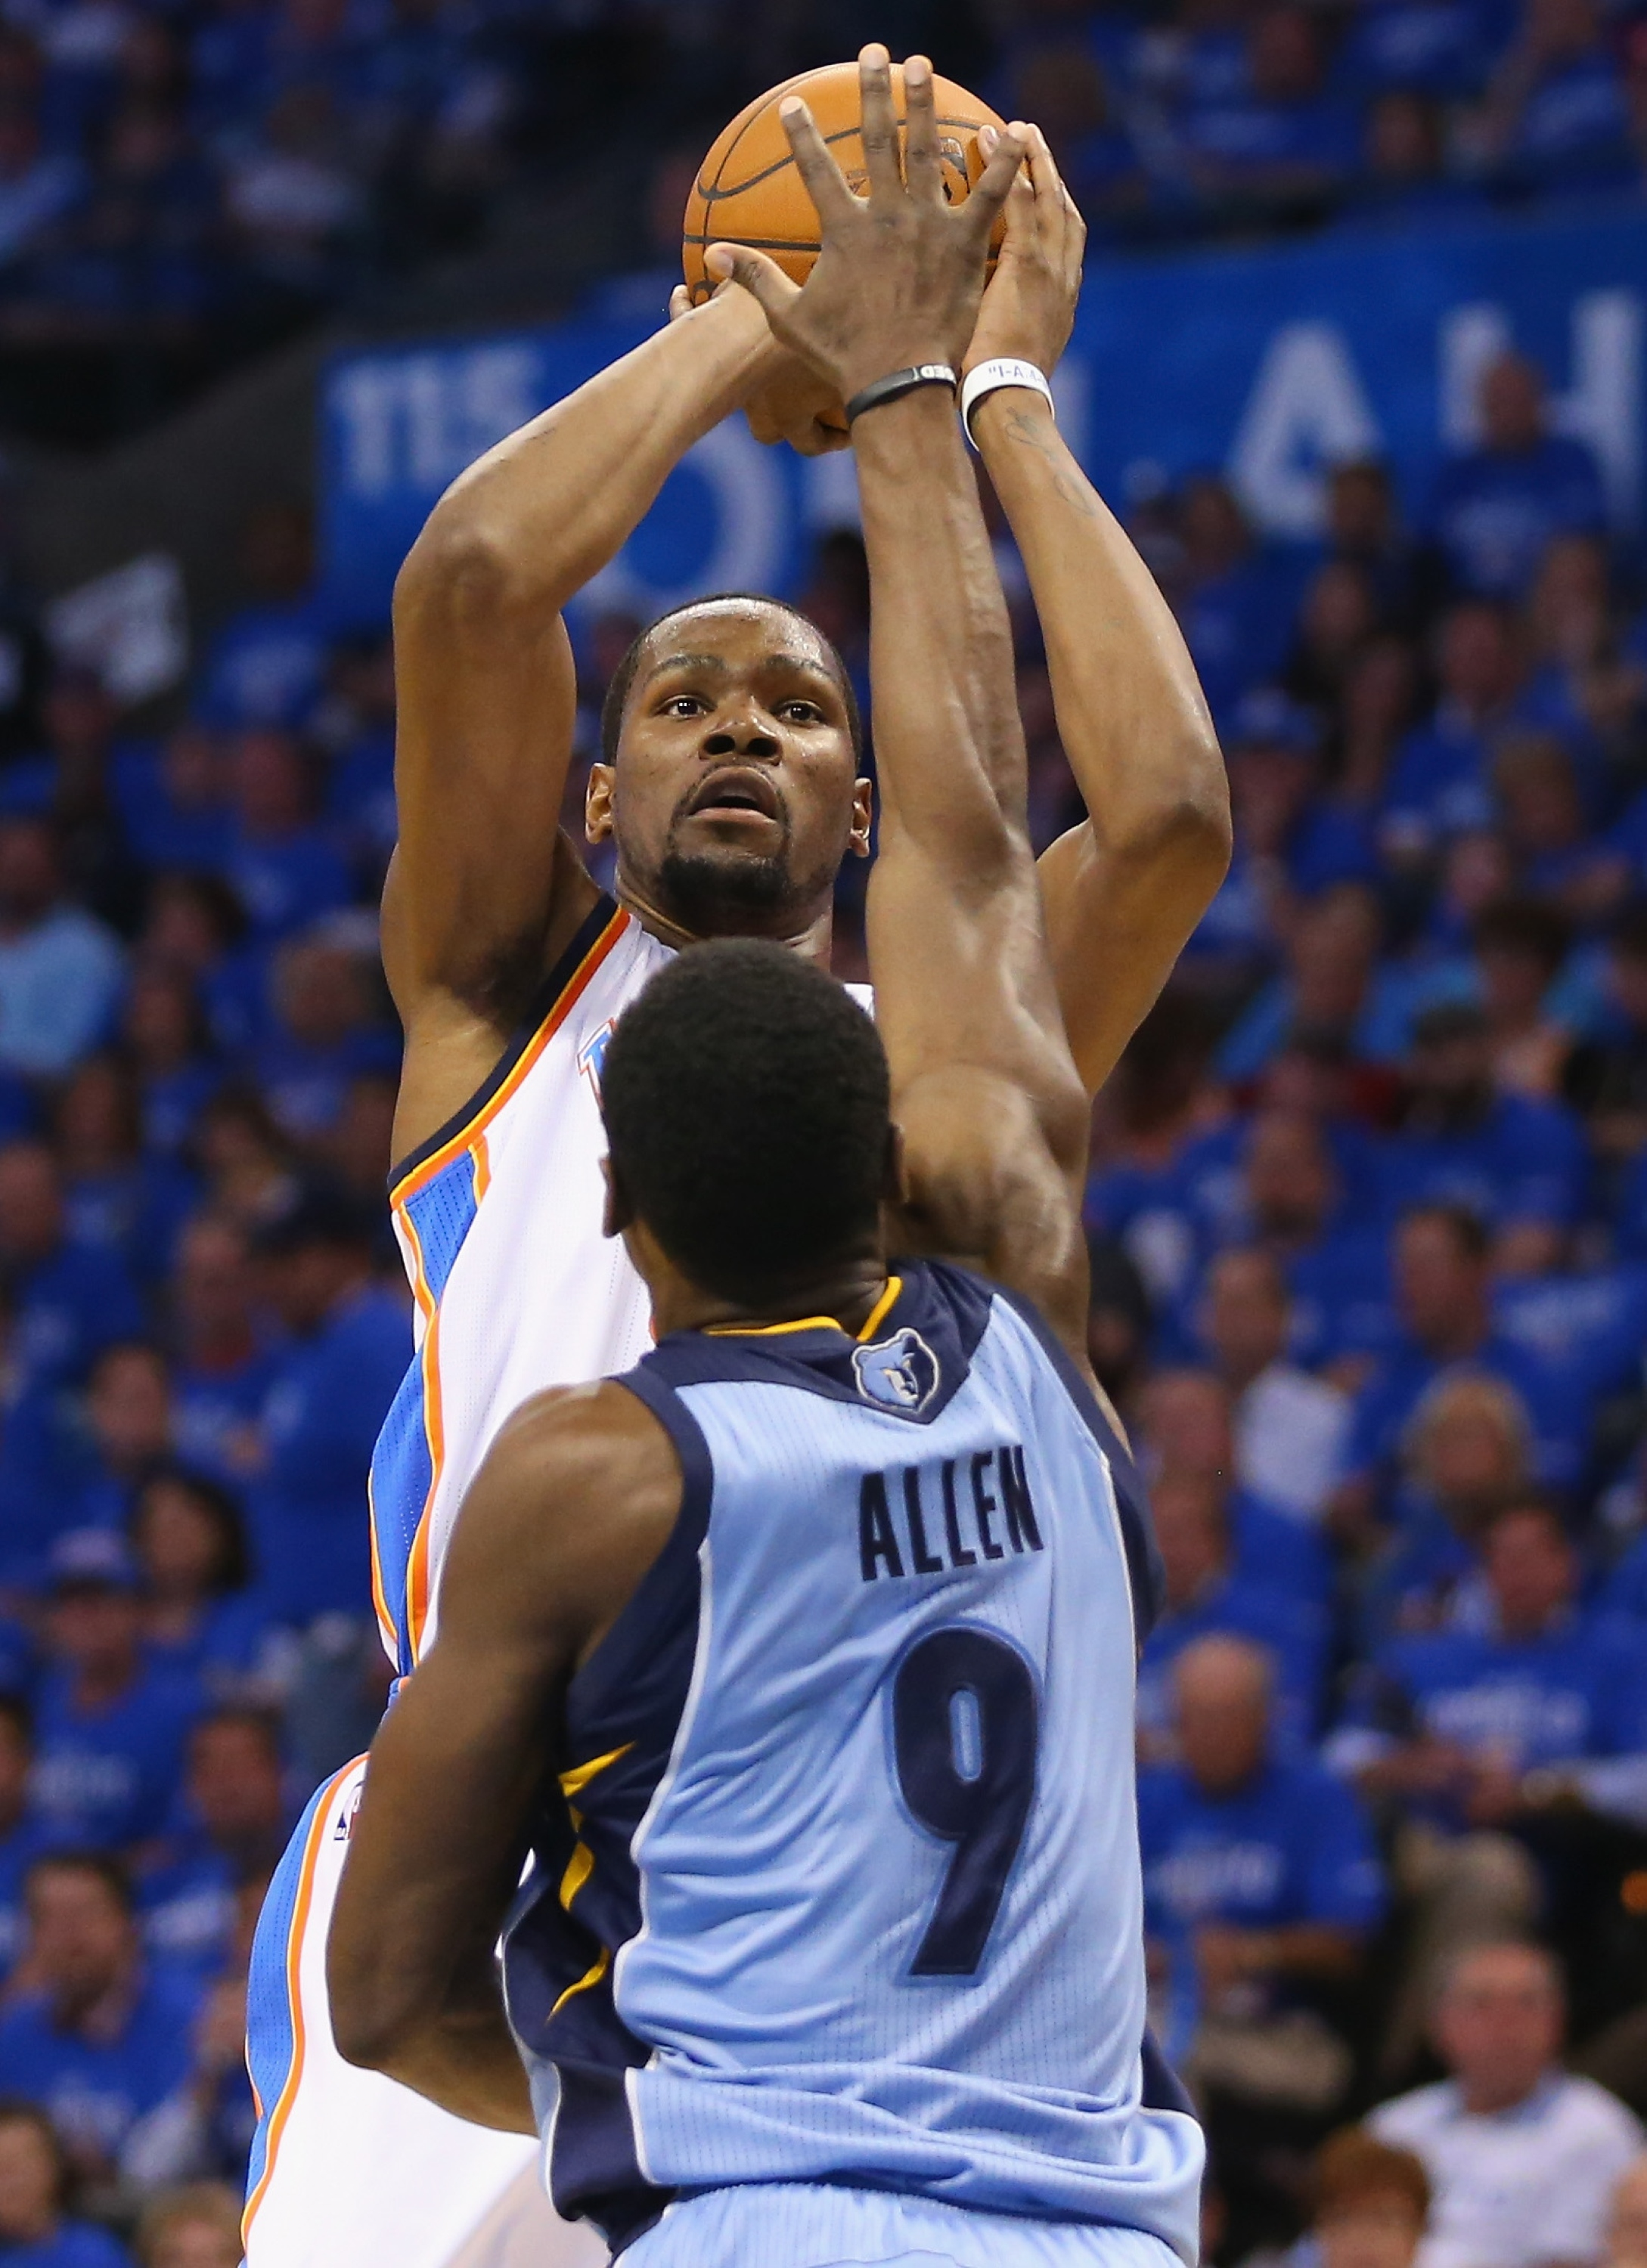 The 10-man rotation, starring Tony Allen's game-changing defens…